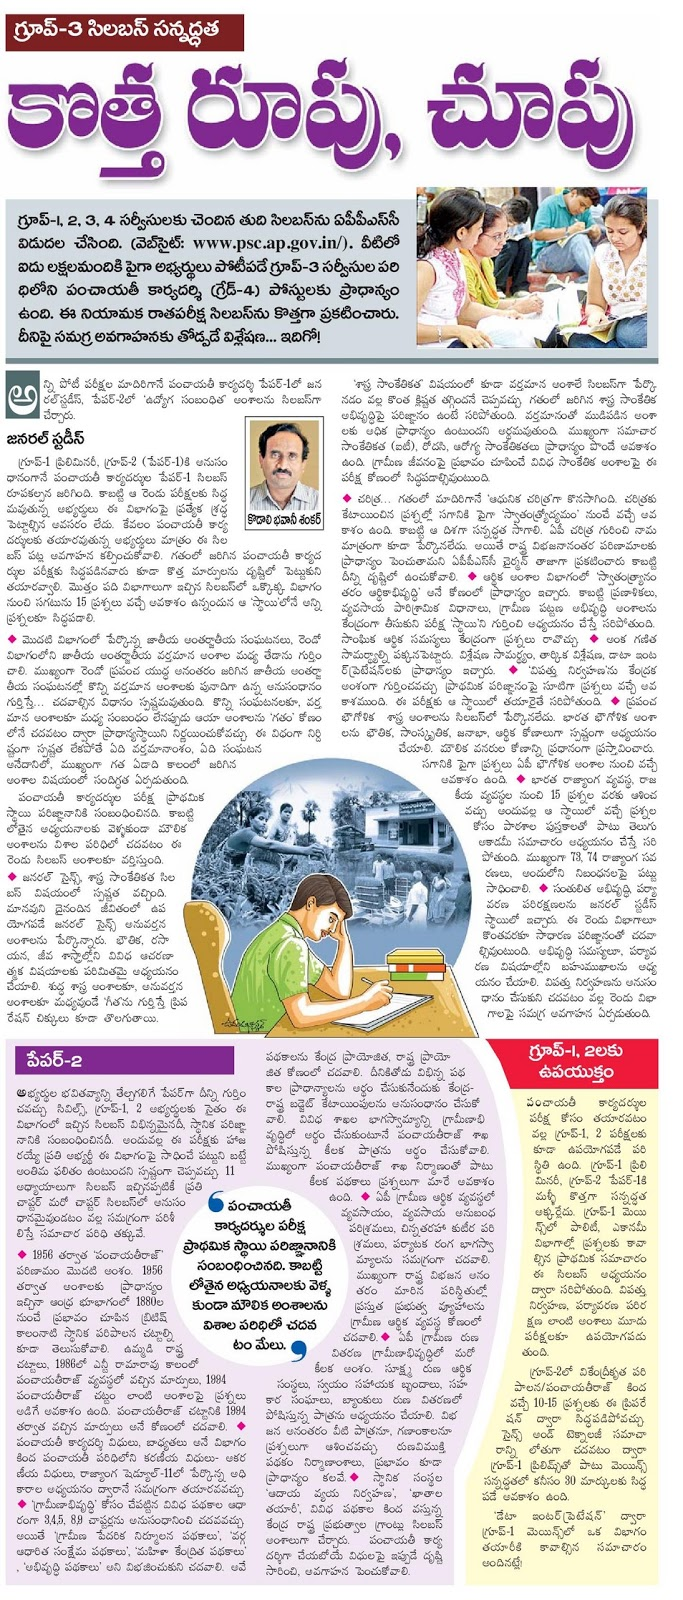 Essay for civil services exam papers solved